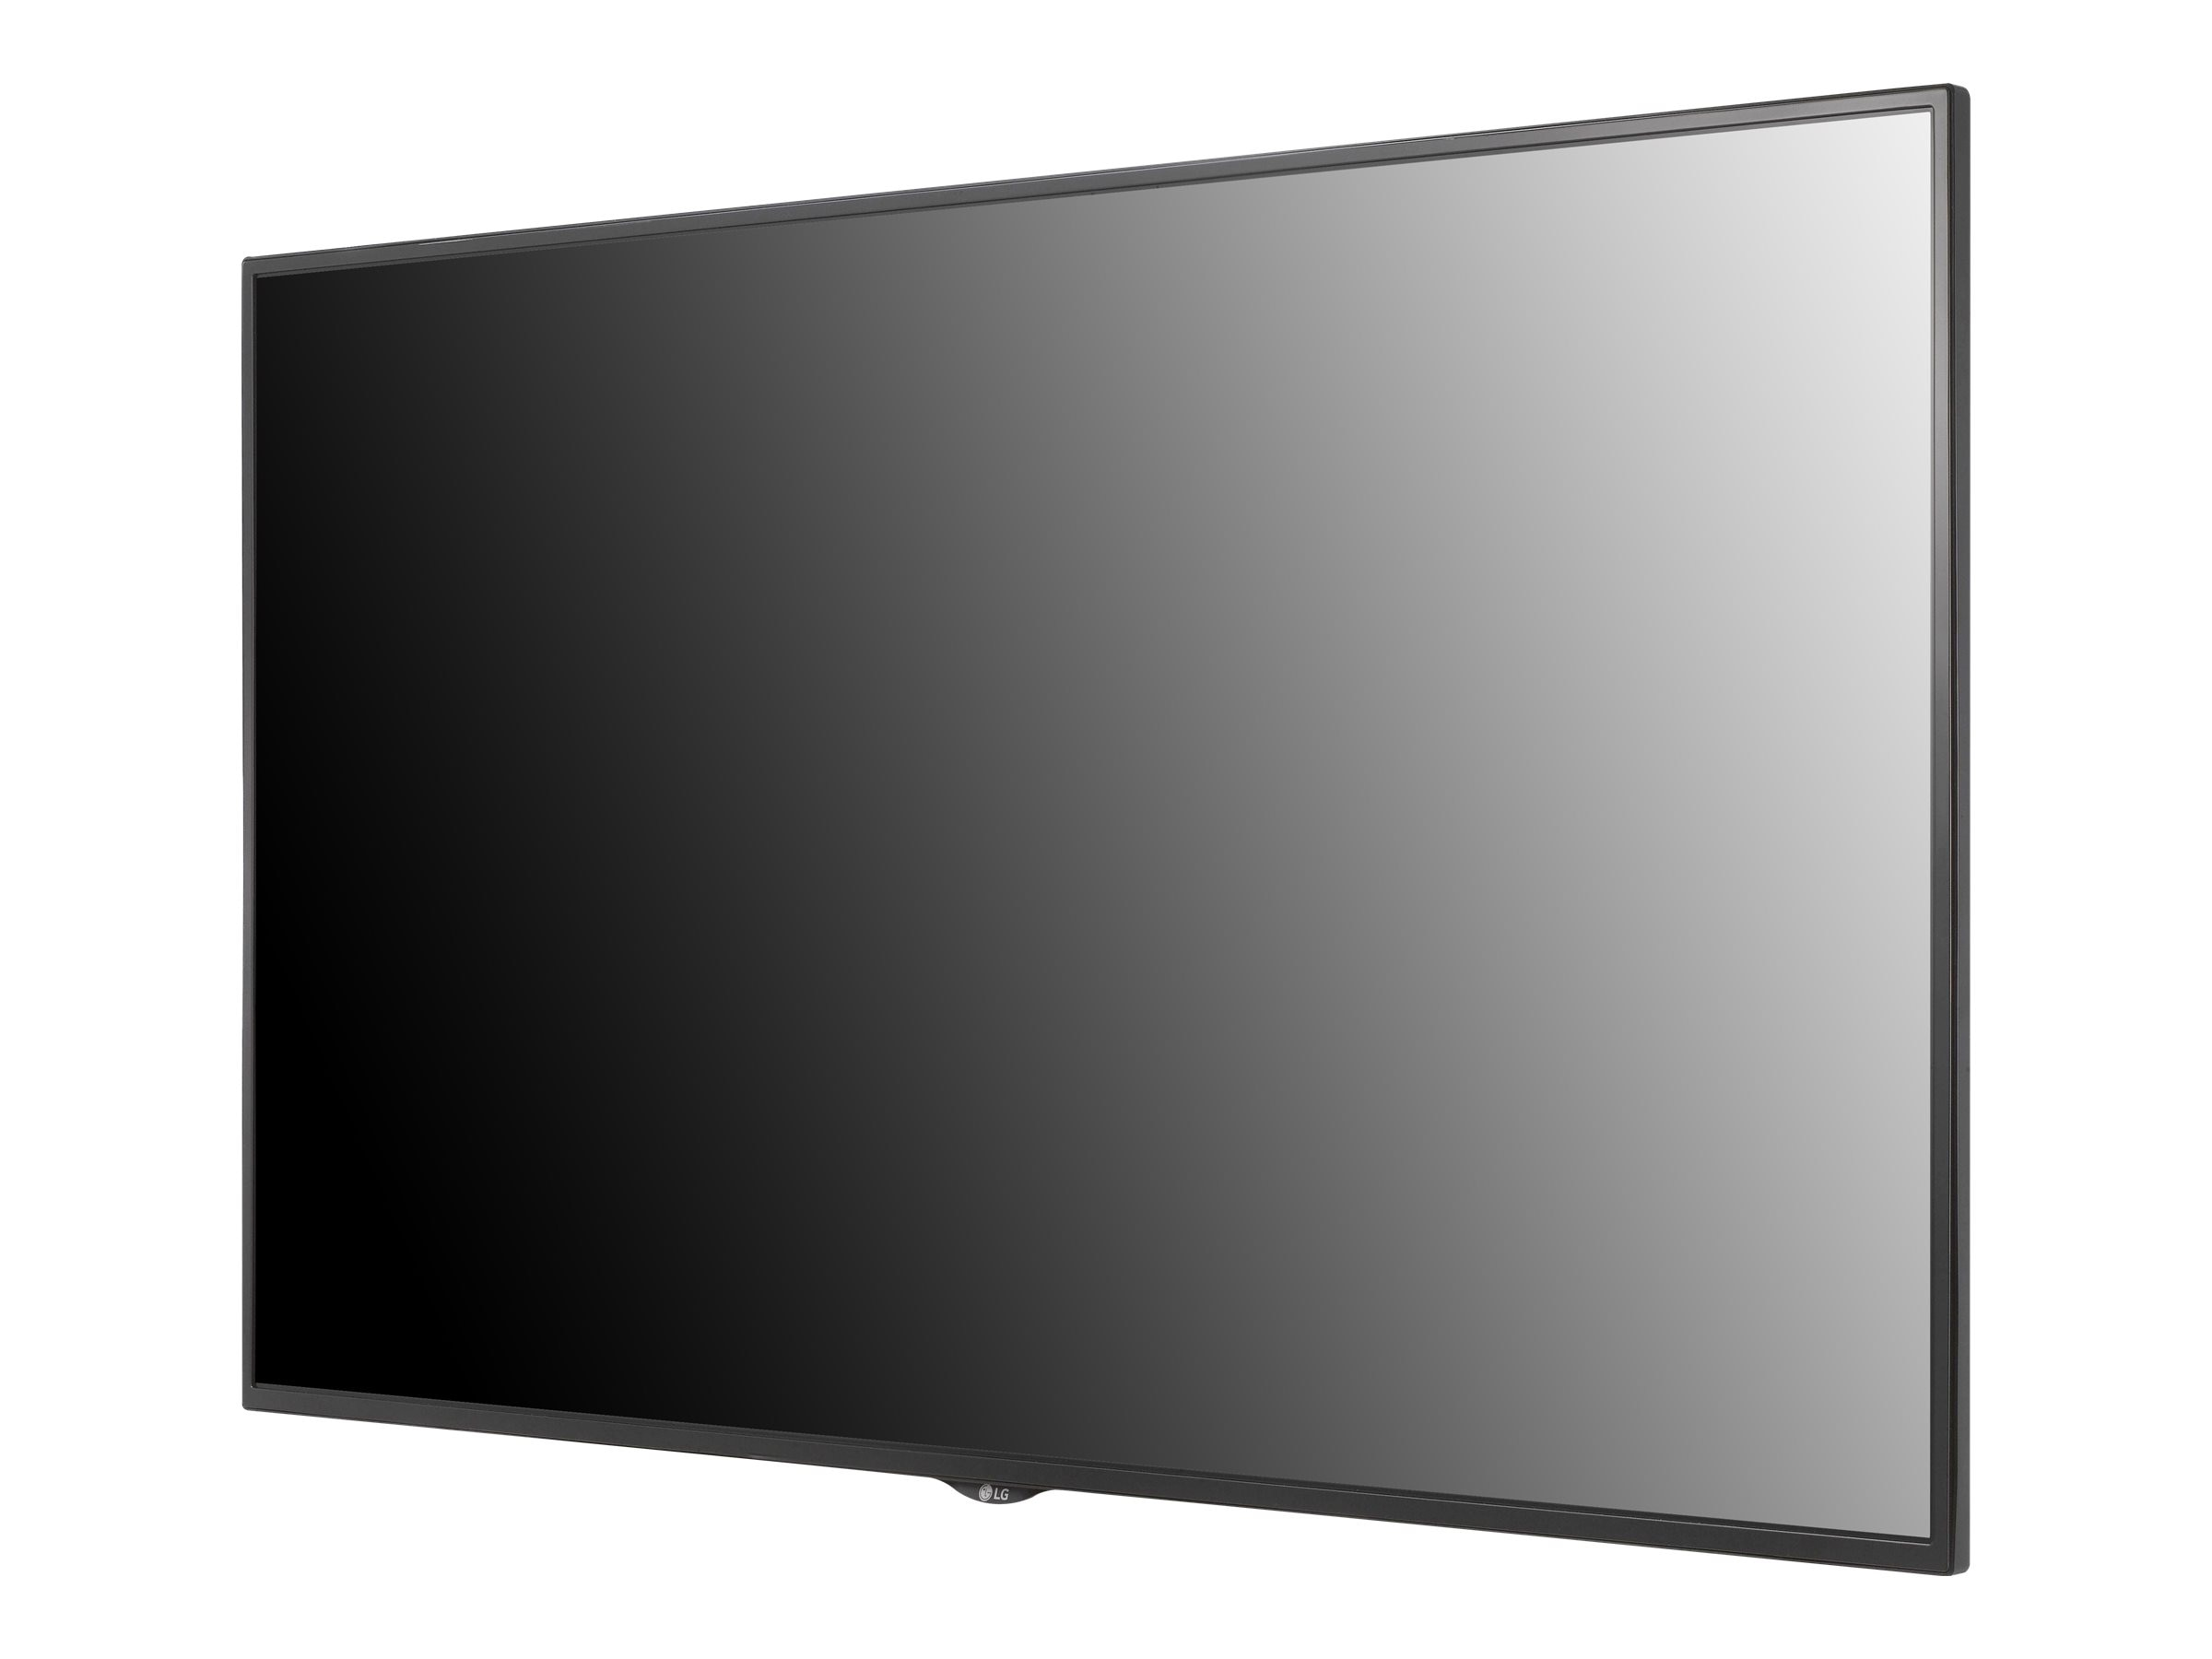 LG 86 UH5C-B Ultra HD LED-LCD Display, Black